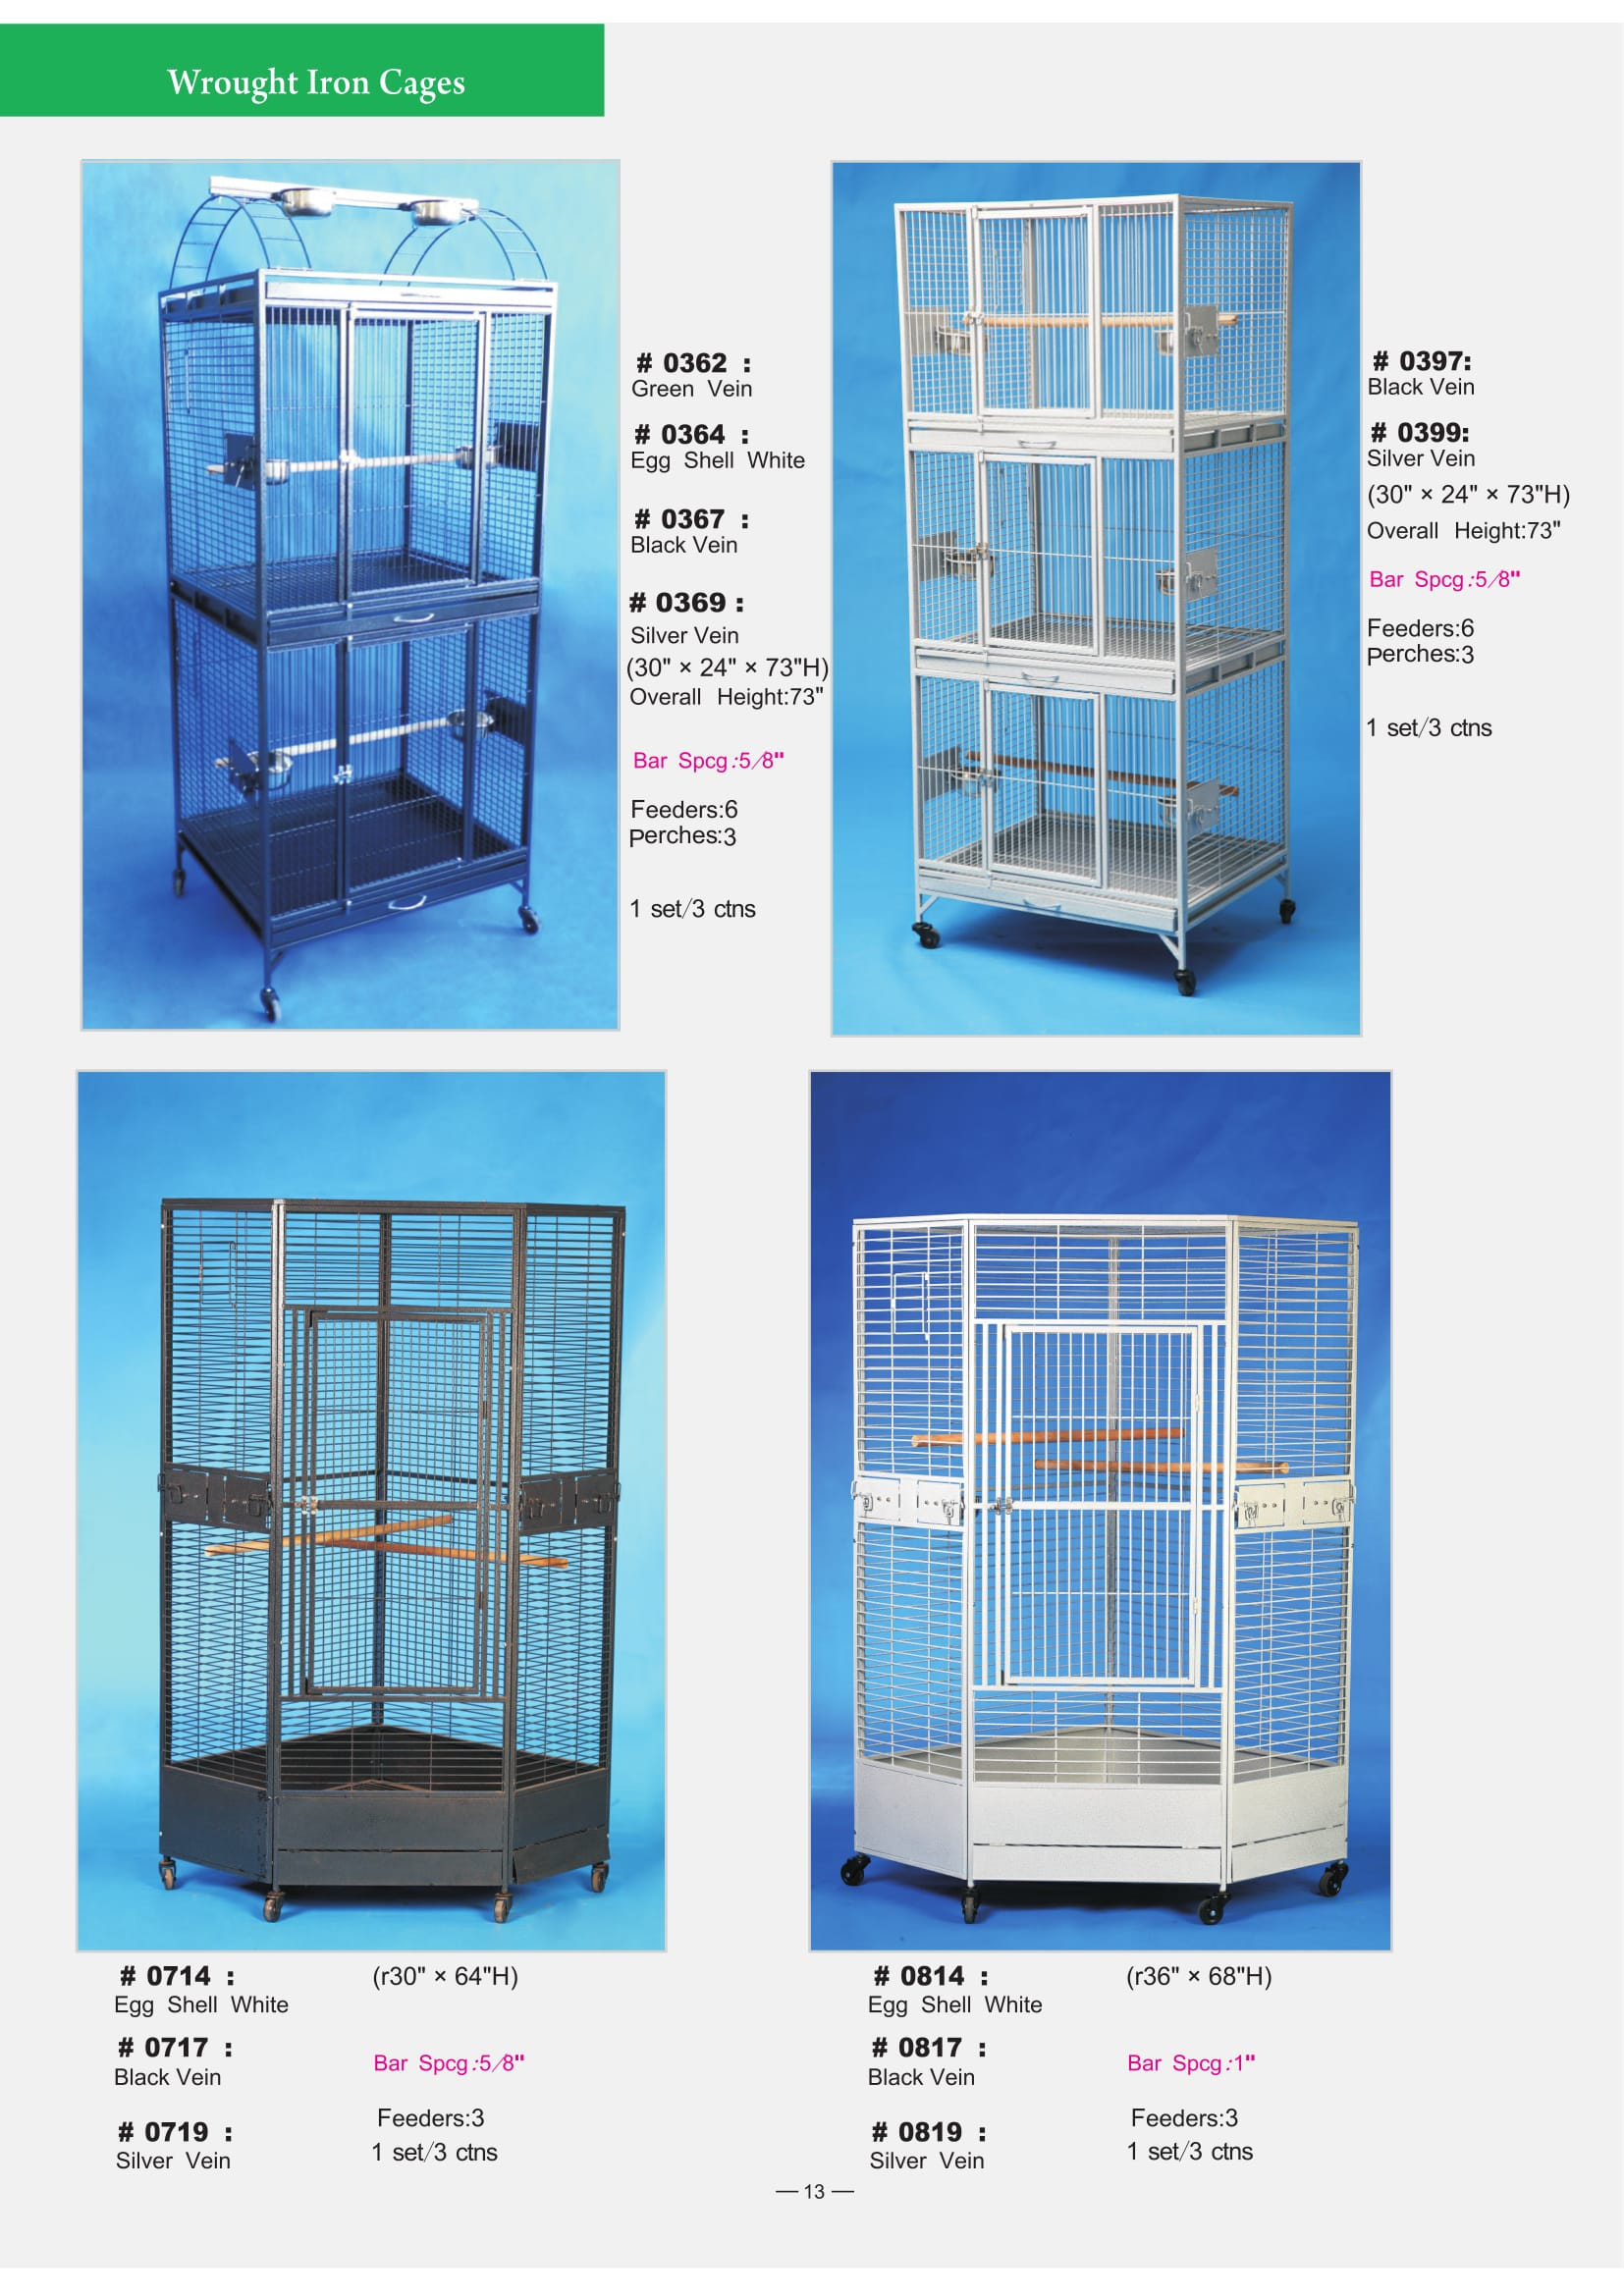 6. Wrought Iron Cages-3